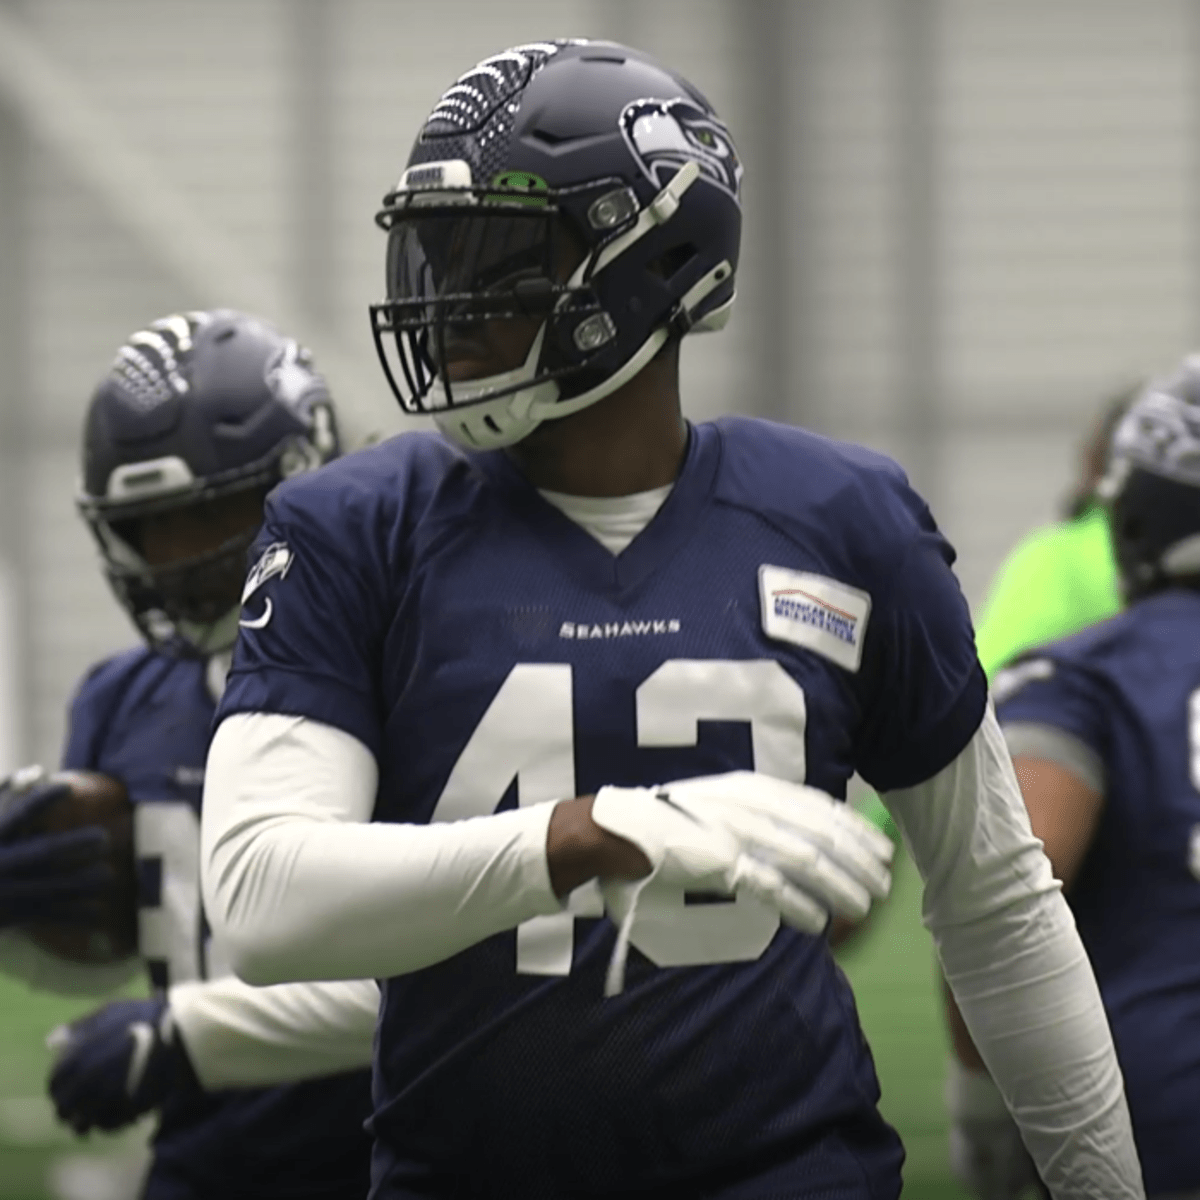 Carlos Dunlap Excited for Fresh Start, Views Seahawks as 'Great ...